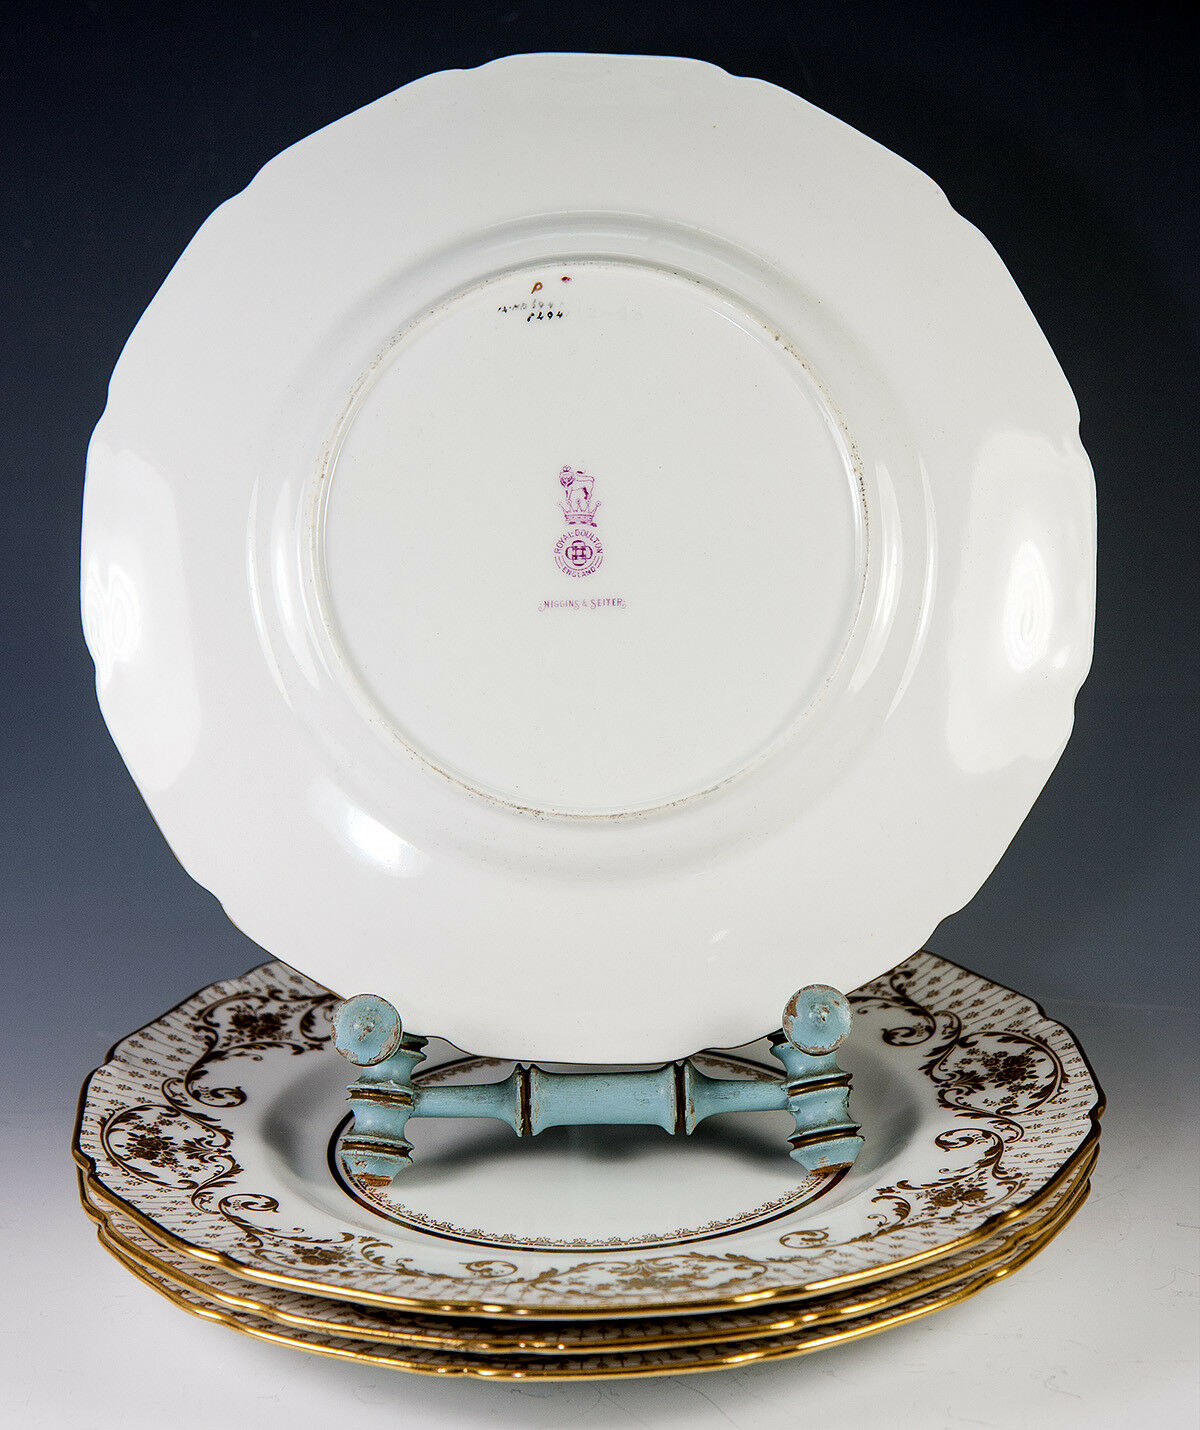 4 Opulent Antique Royal Doulton Raised Gold Enamel & Cobalt Dinner Plate Set